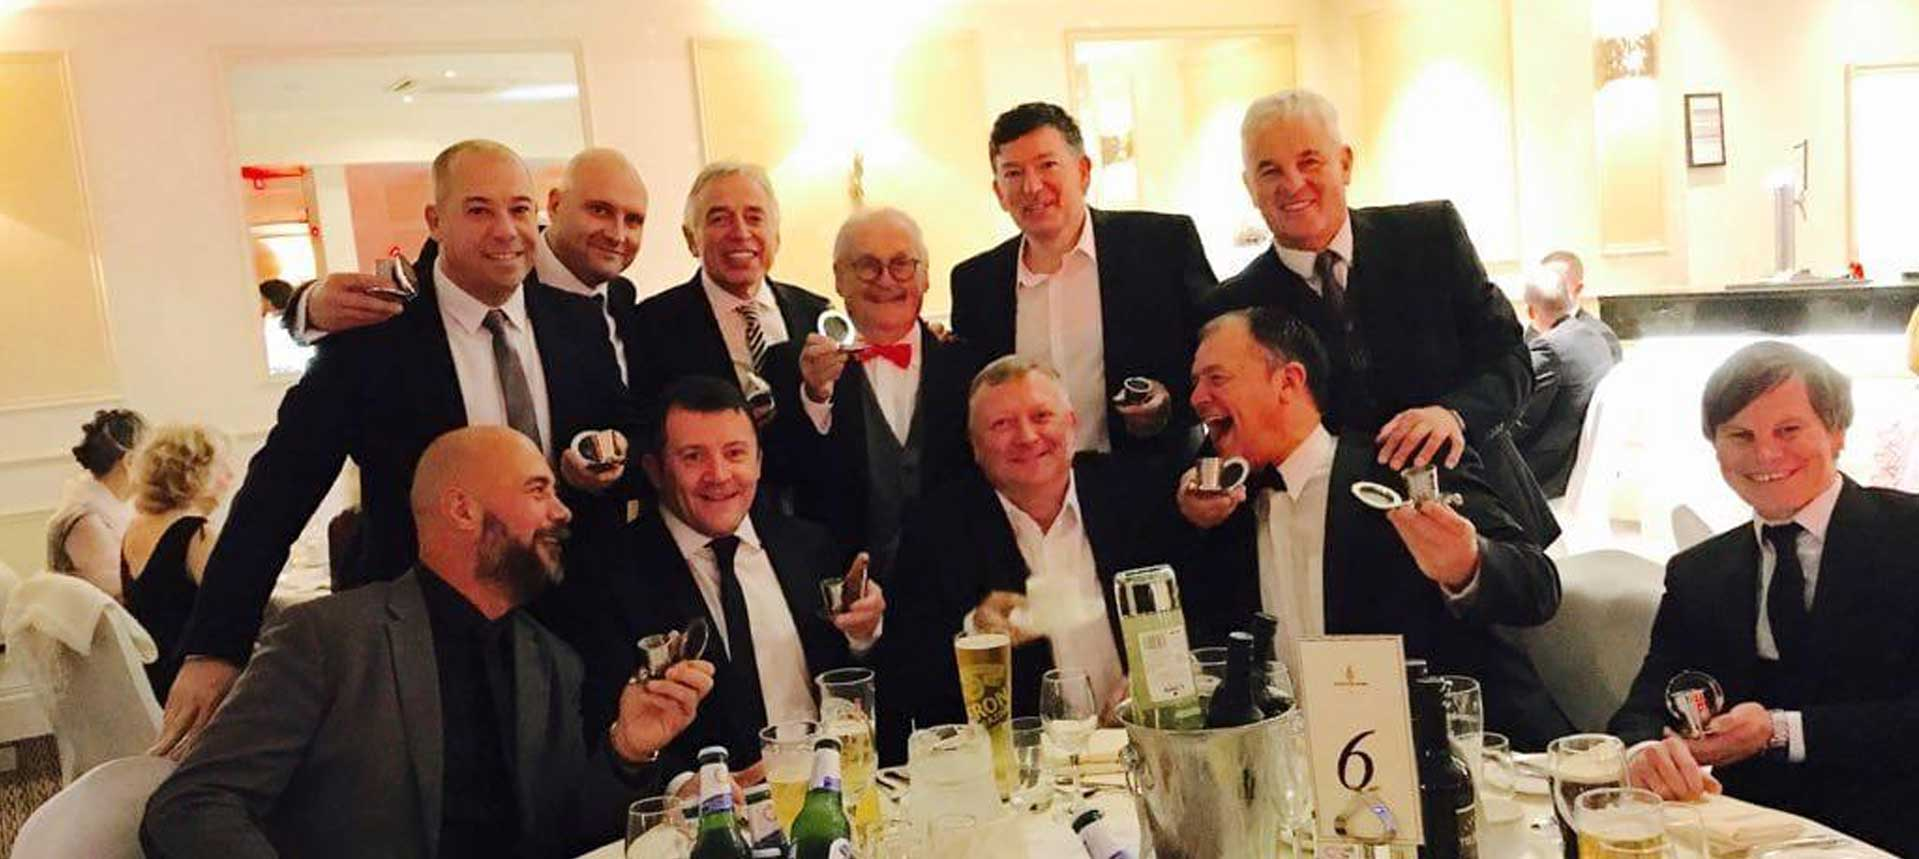 John Camilleri, Bobby Ball & Dalvey Cup Club members propose a toast to absent friends